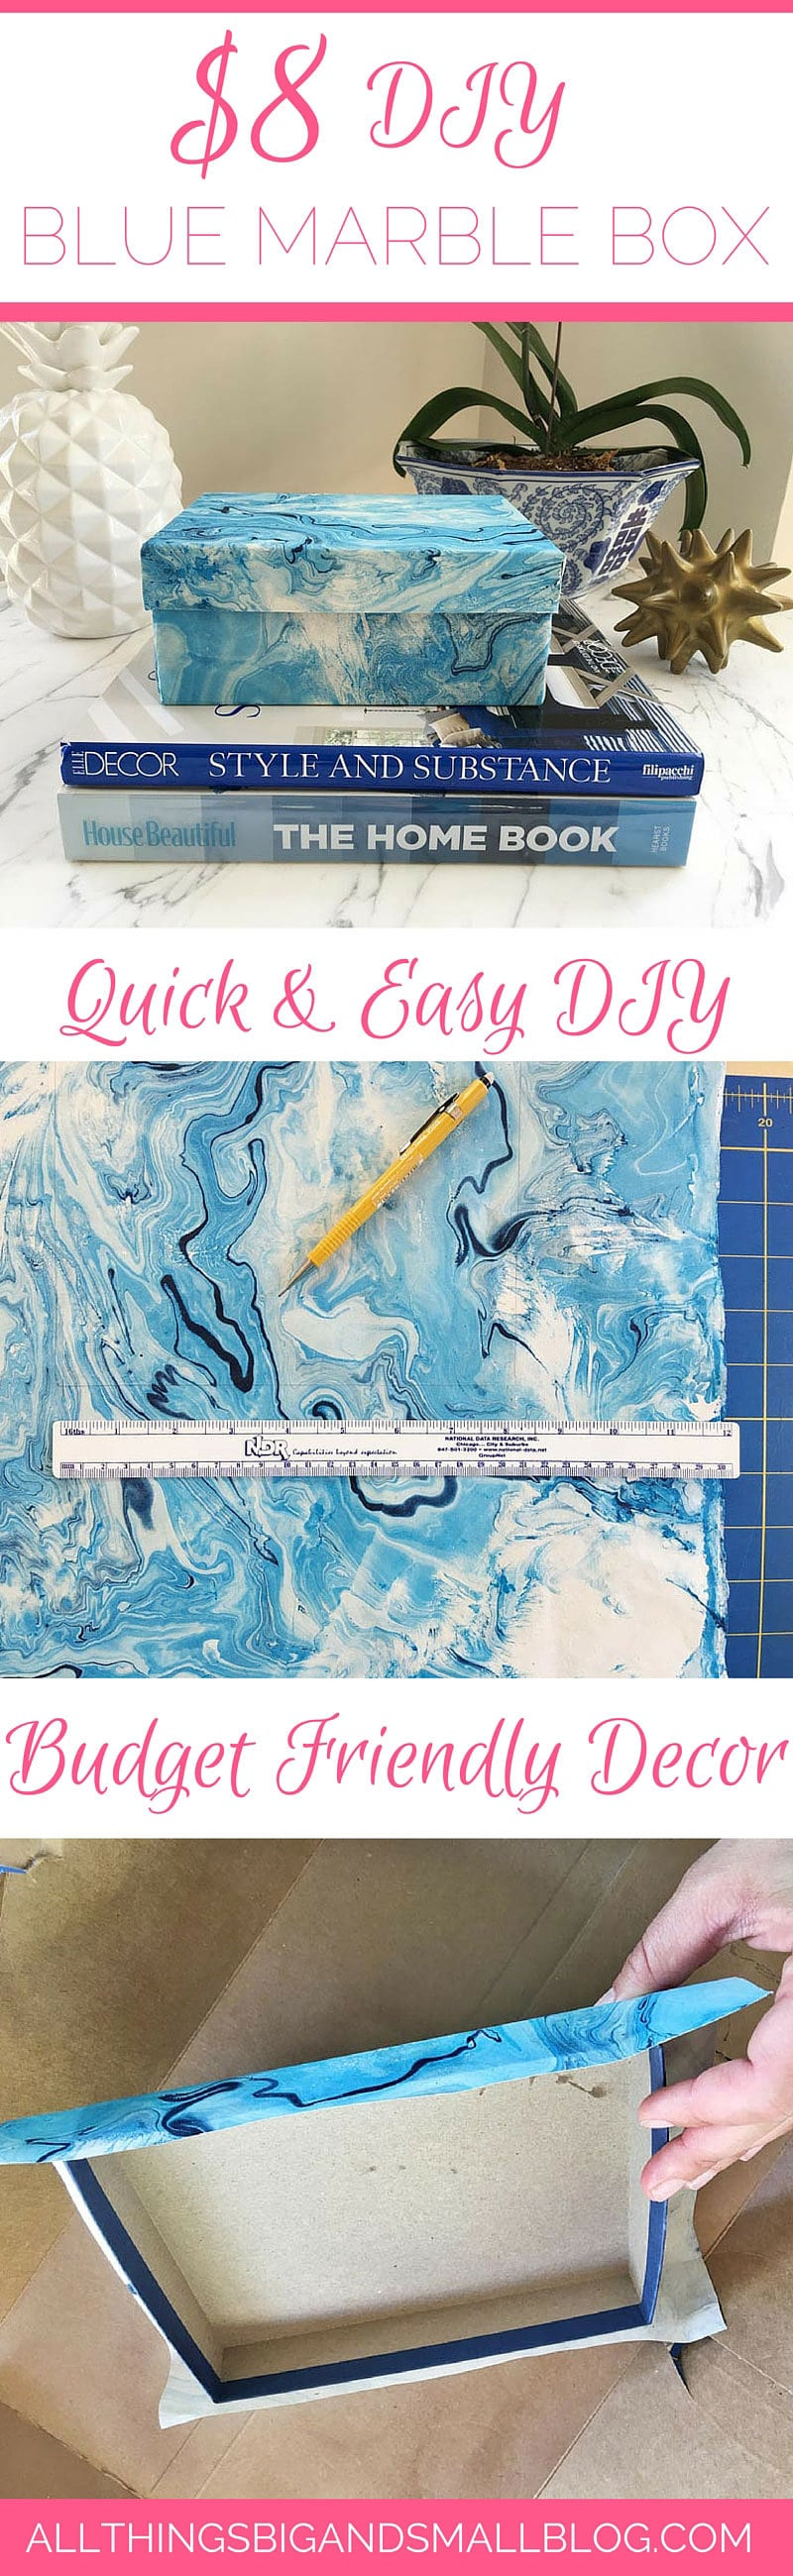 DIY Marble Box- Budget-friendly step-by-step guide to home decor for $8 PLUS a free Resource Guide for the best budget-friendly decorating resources all at All Things Big and Small Blog!